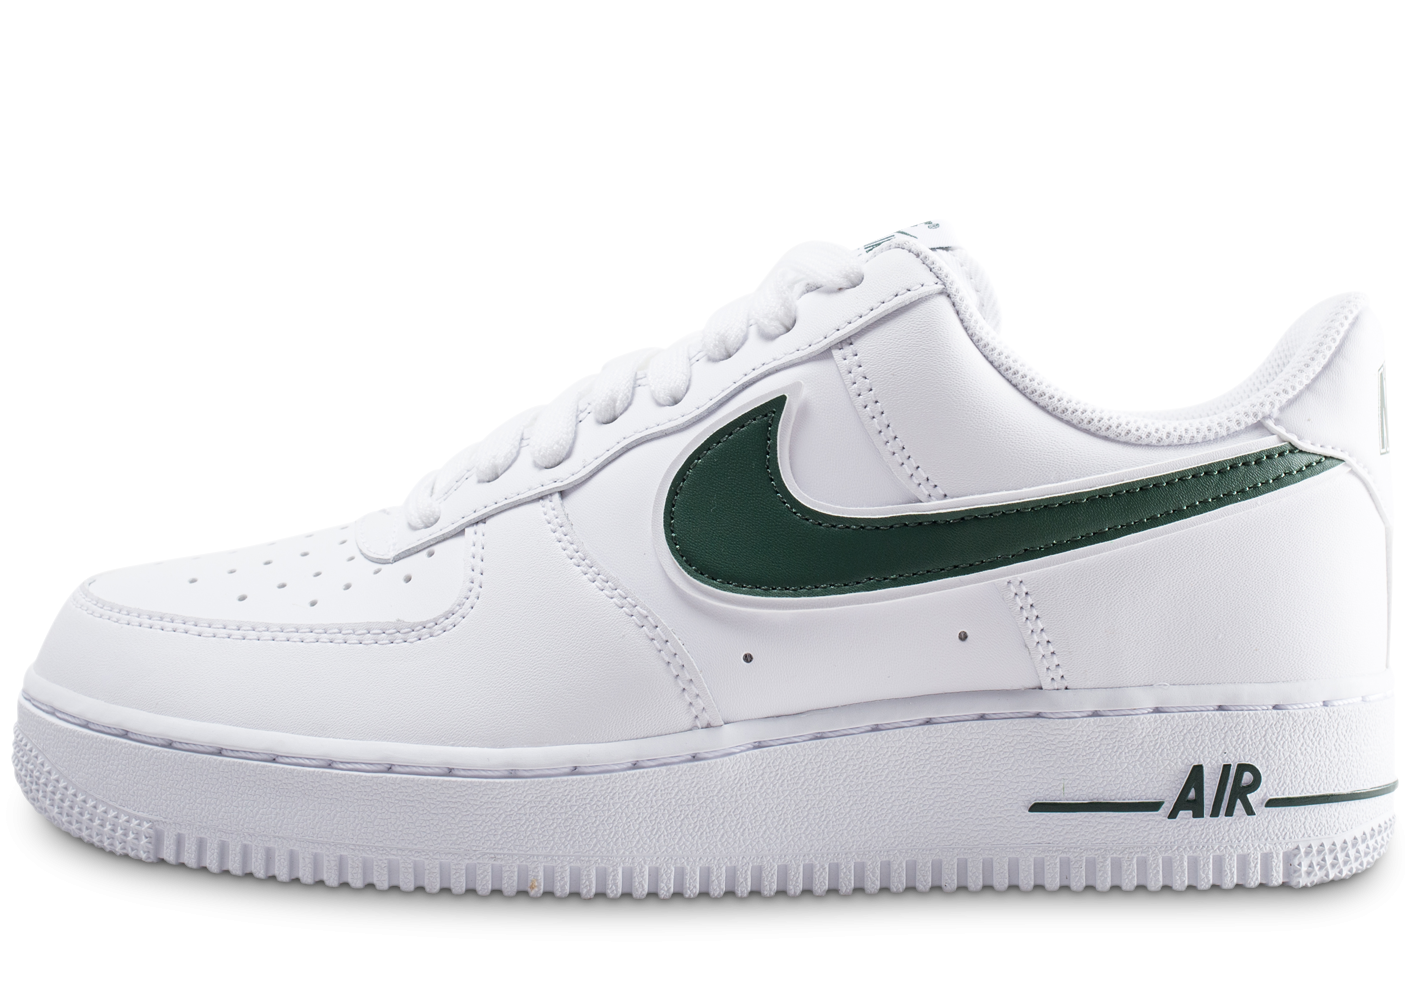 Nike Air Force 1 '07 blanche et verte